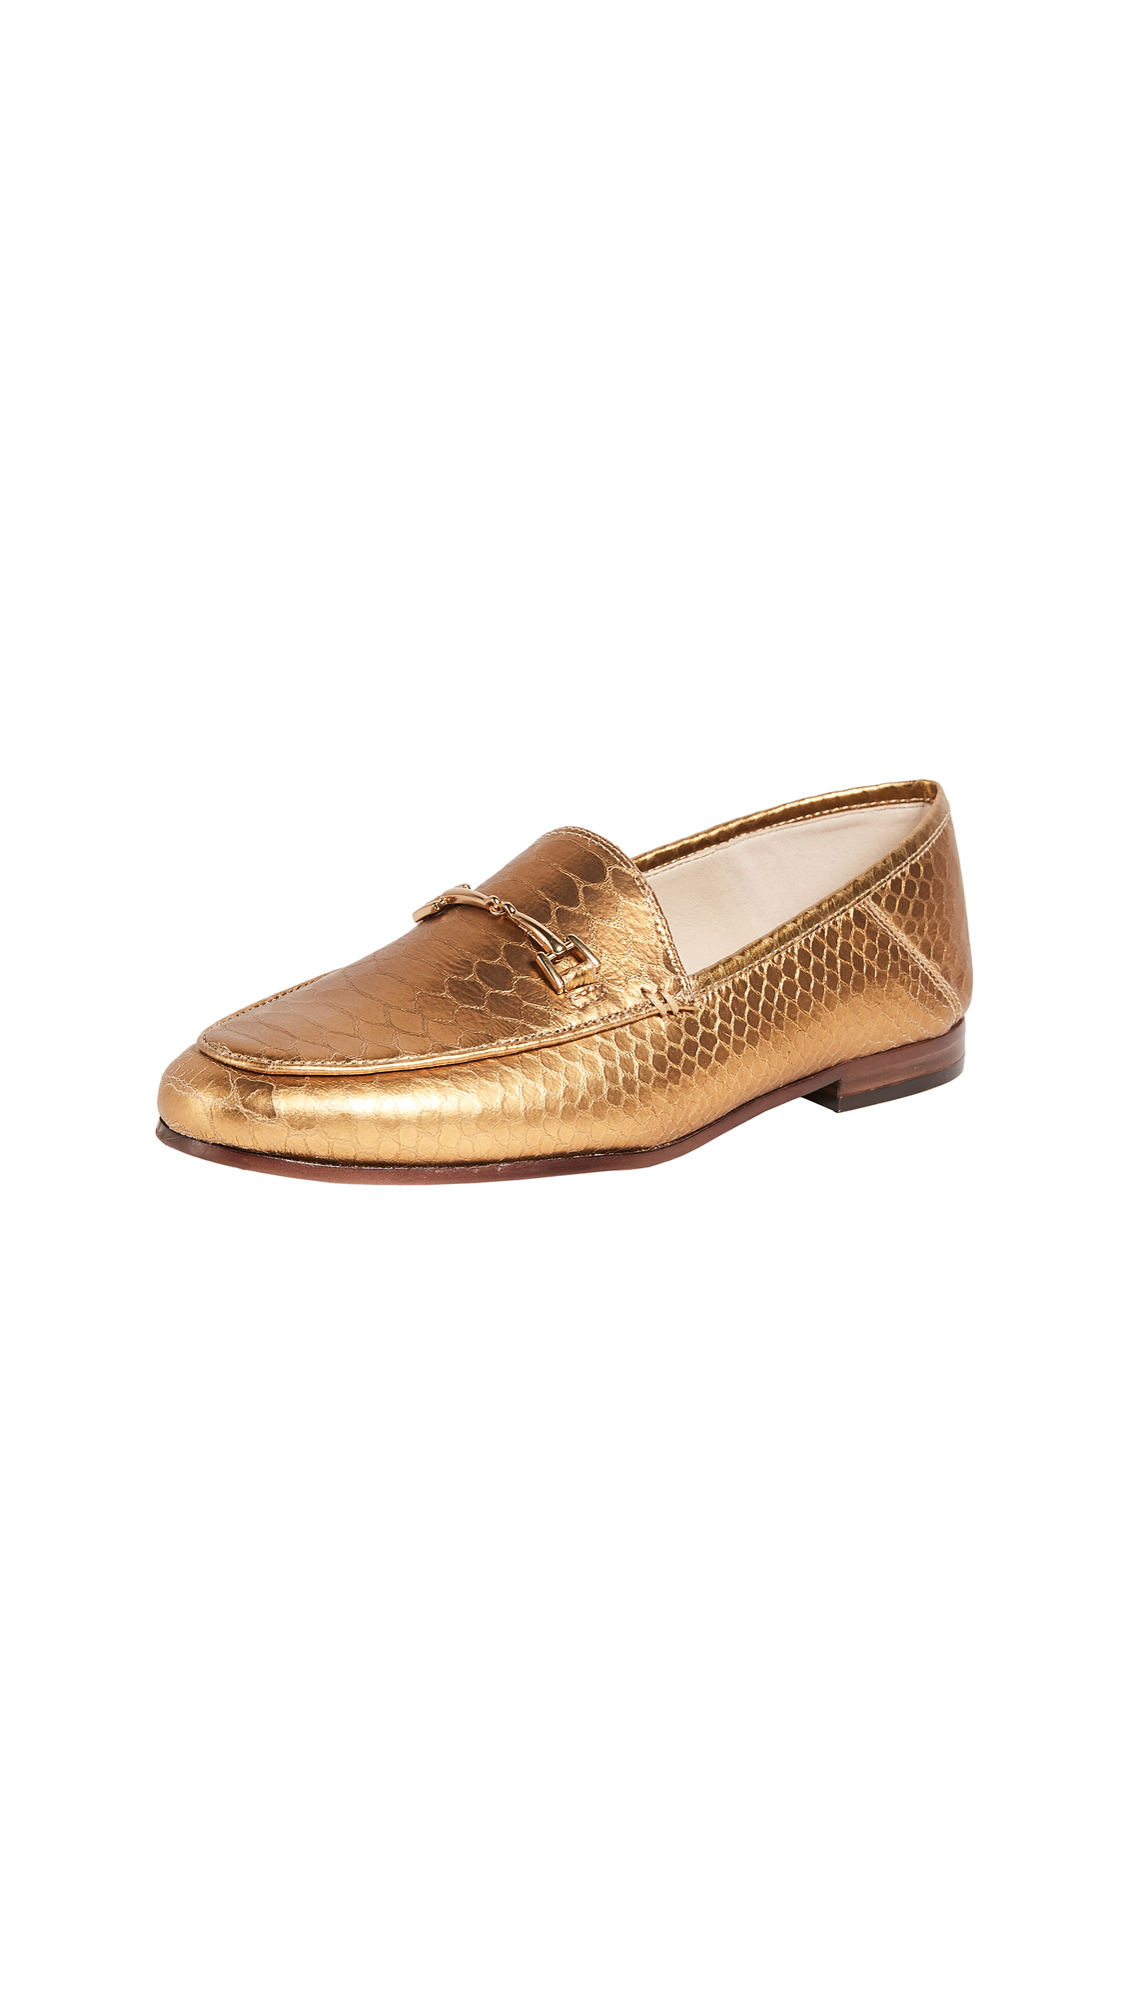 Sam Edelman Loraine Loafers - Gold